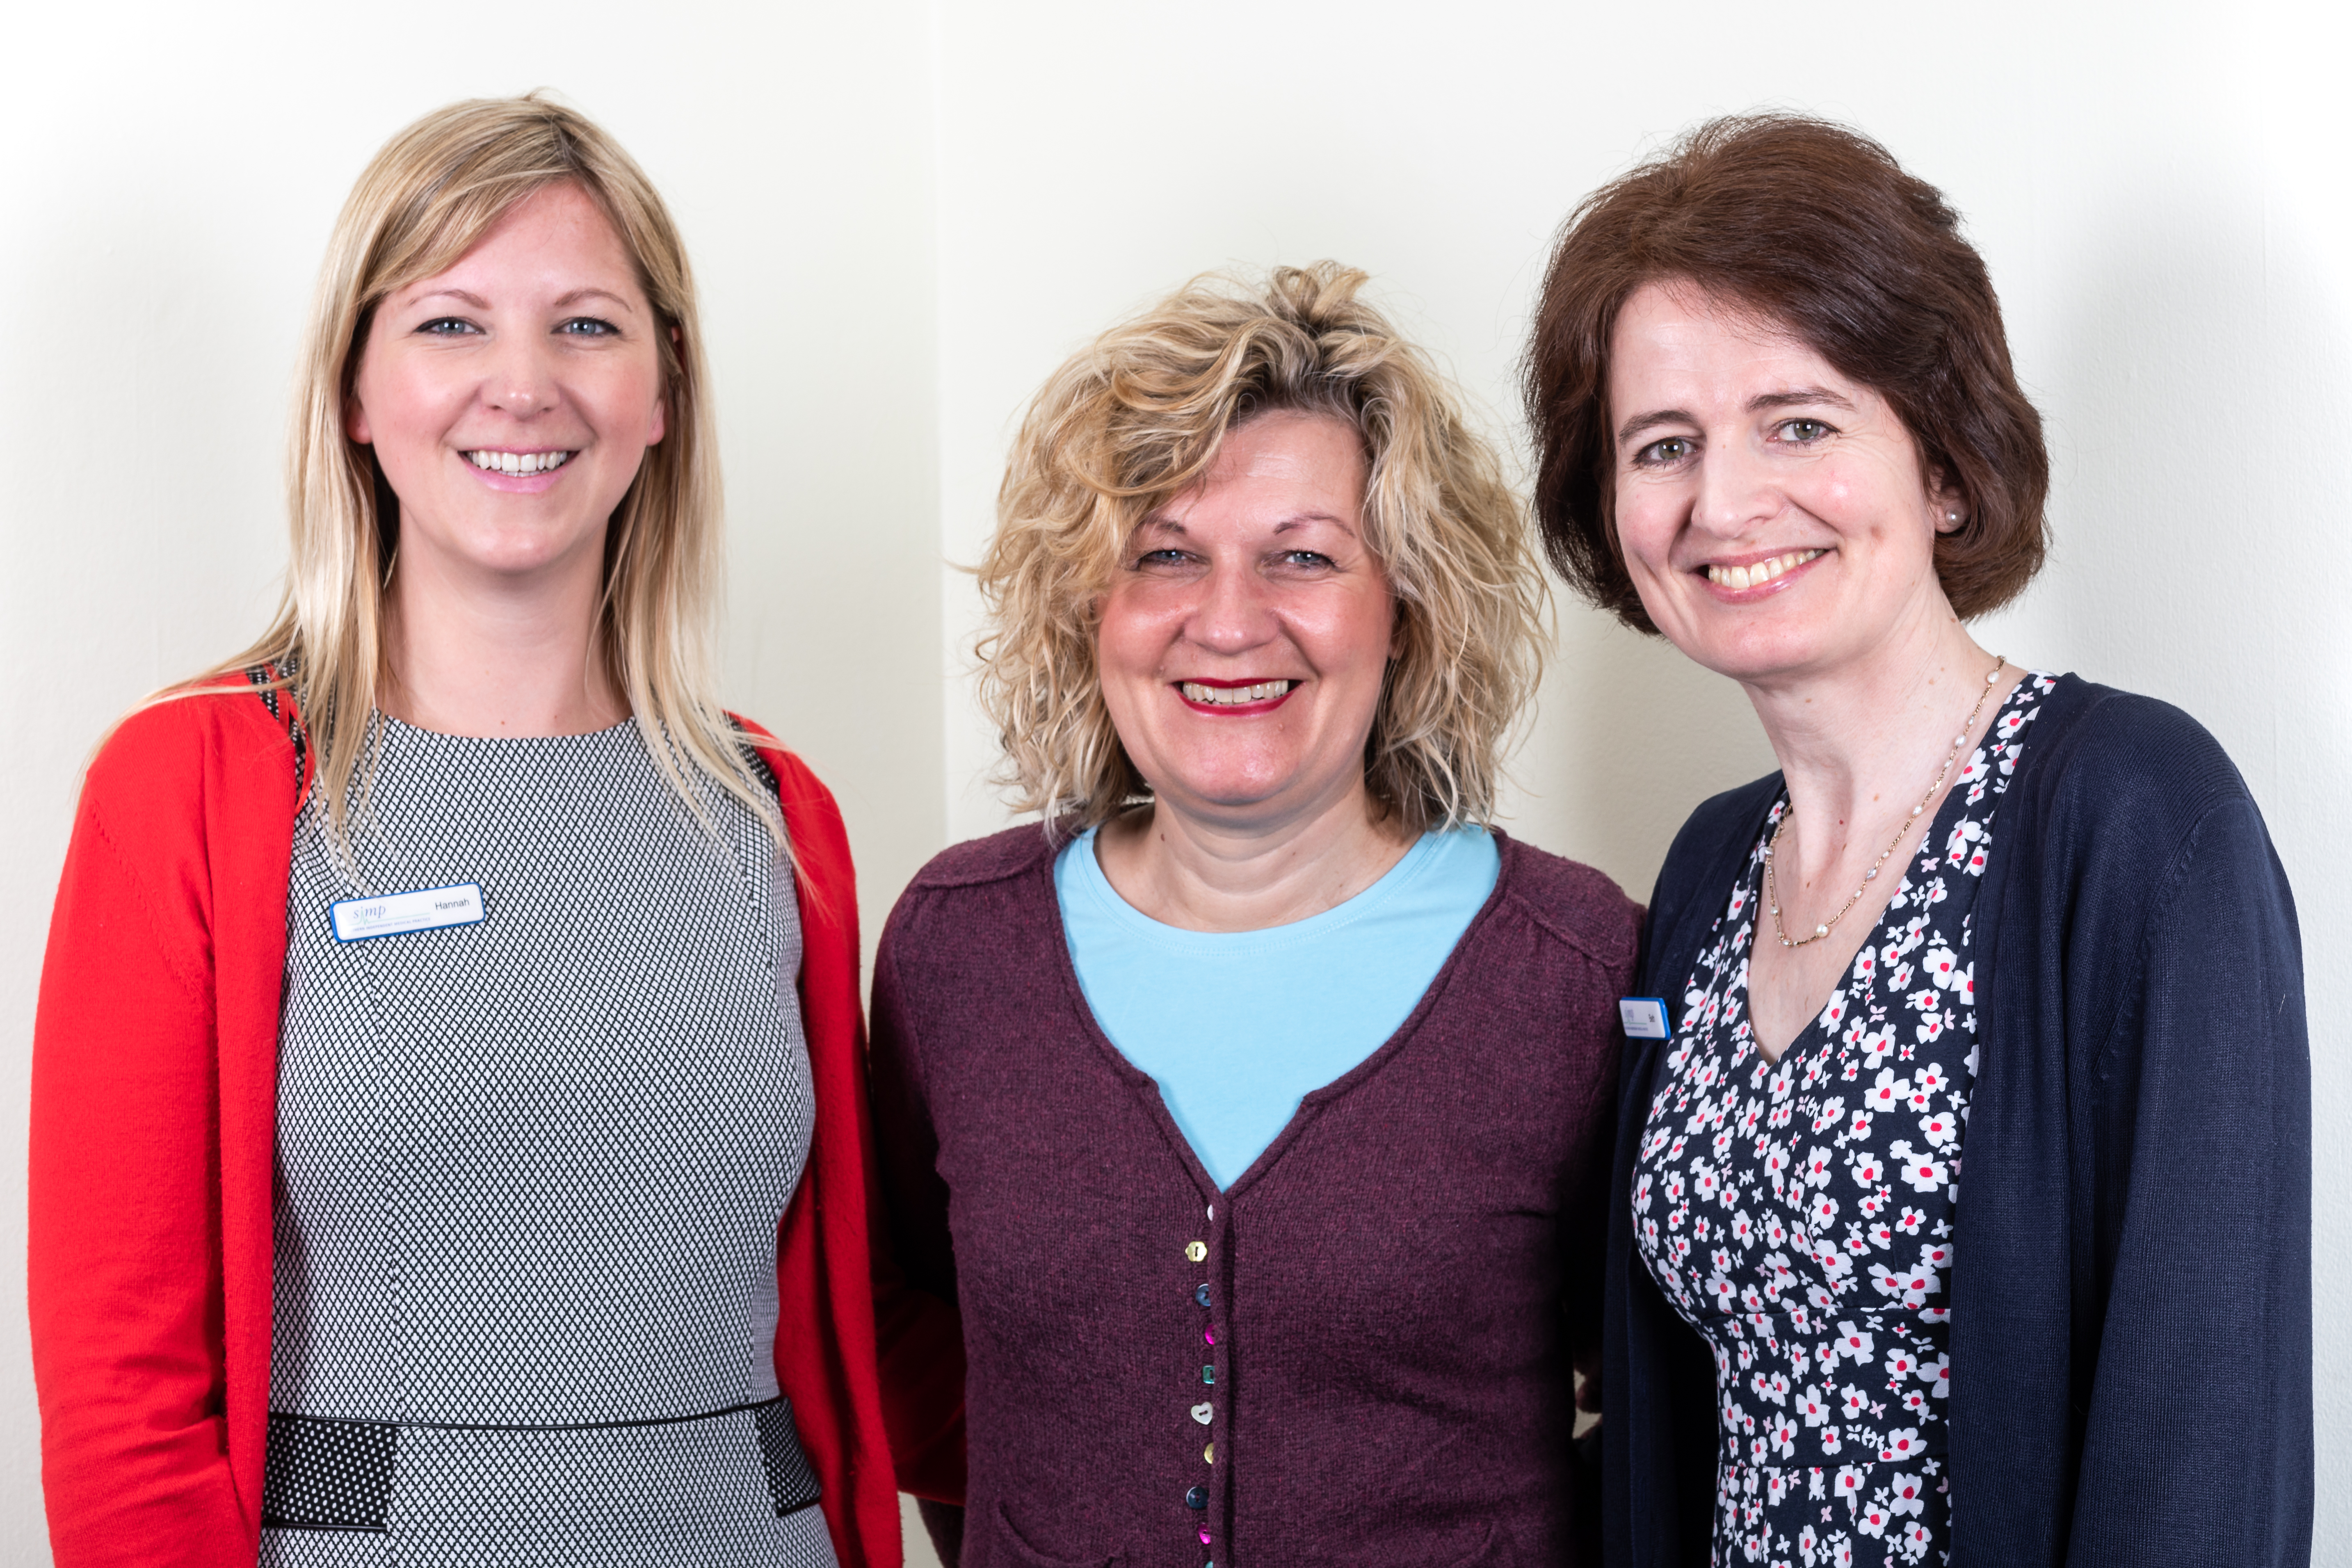 Secretarial and reception teams from the Southern Independent Medical Practice